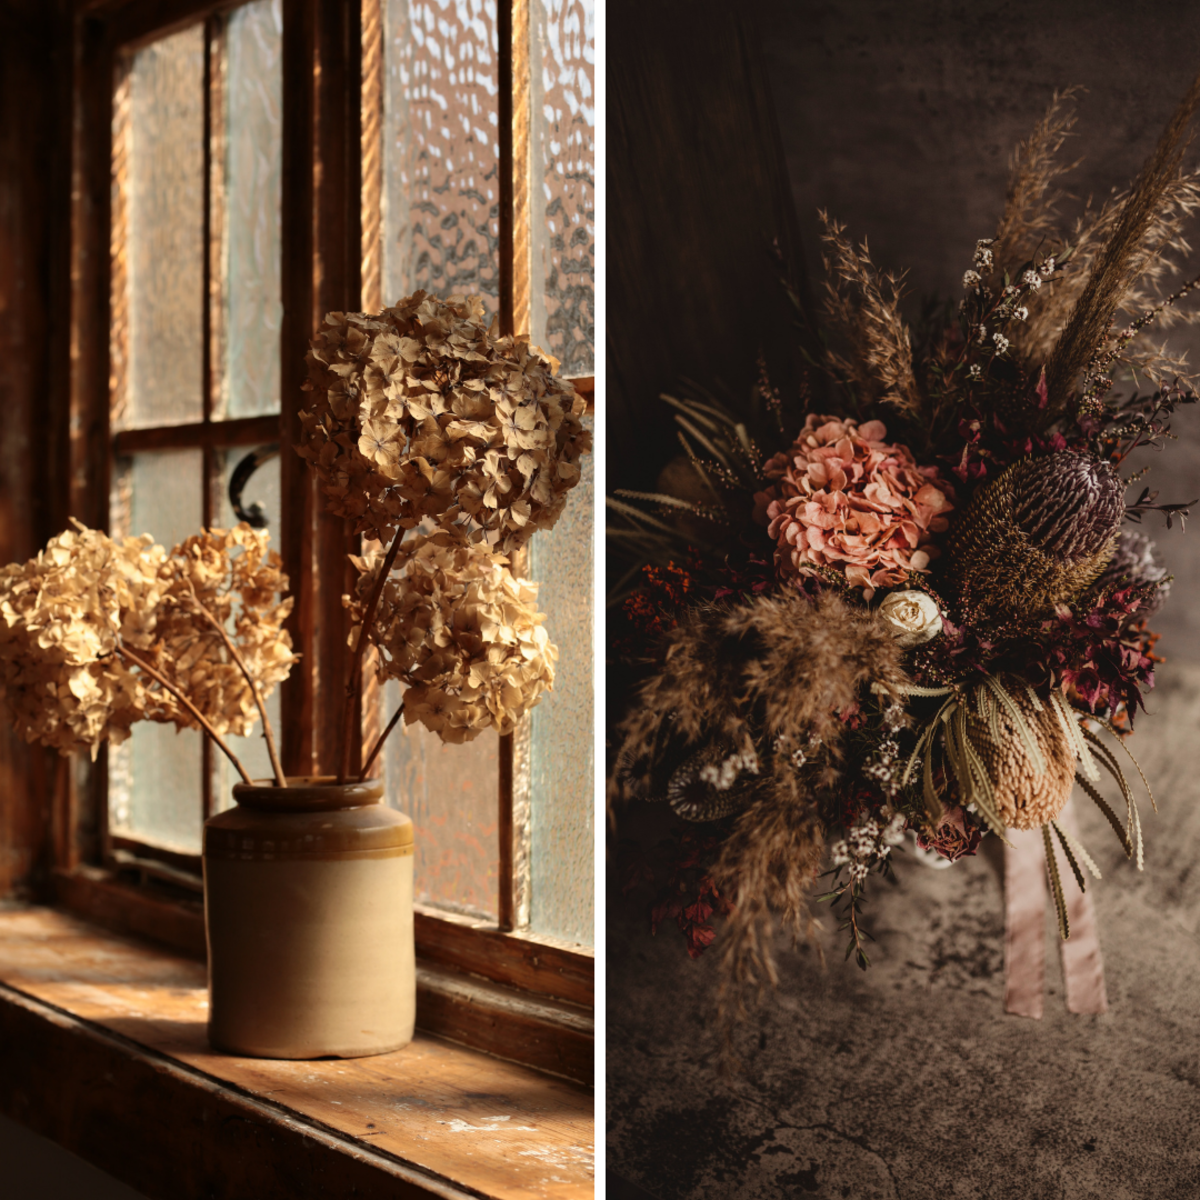 Dried hydrangeas are very versatile. Here are just two ways they might be arranged!